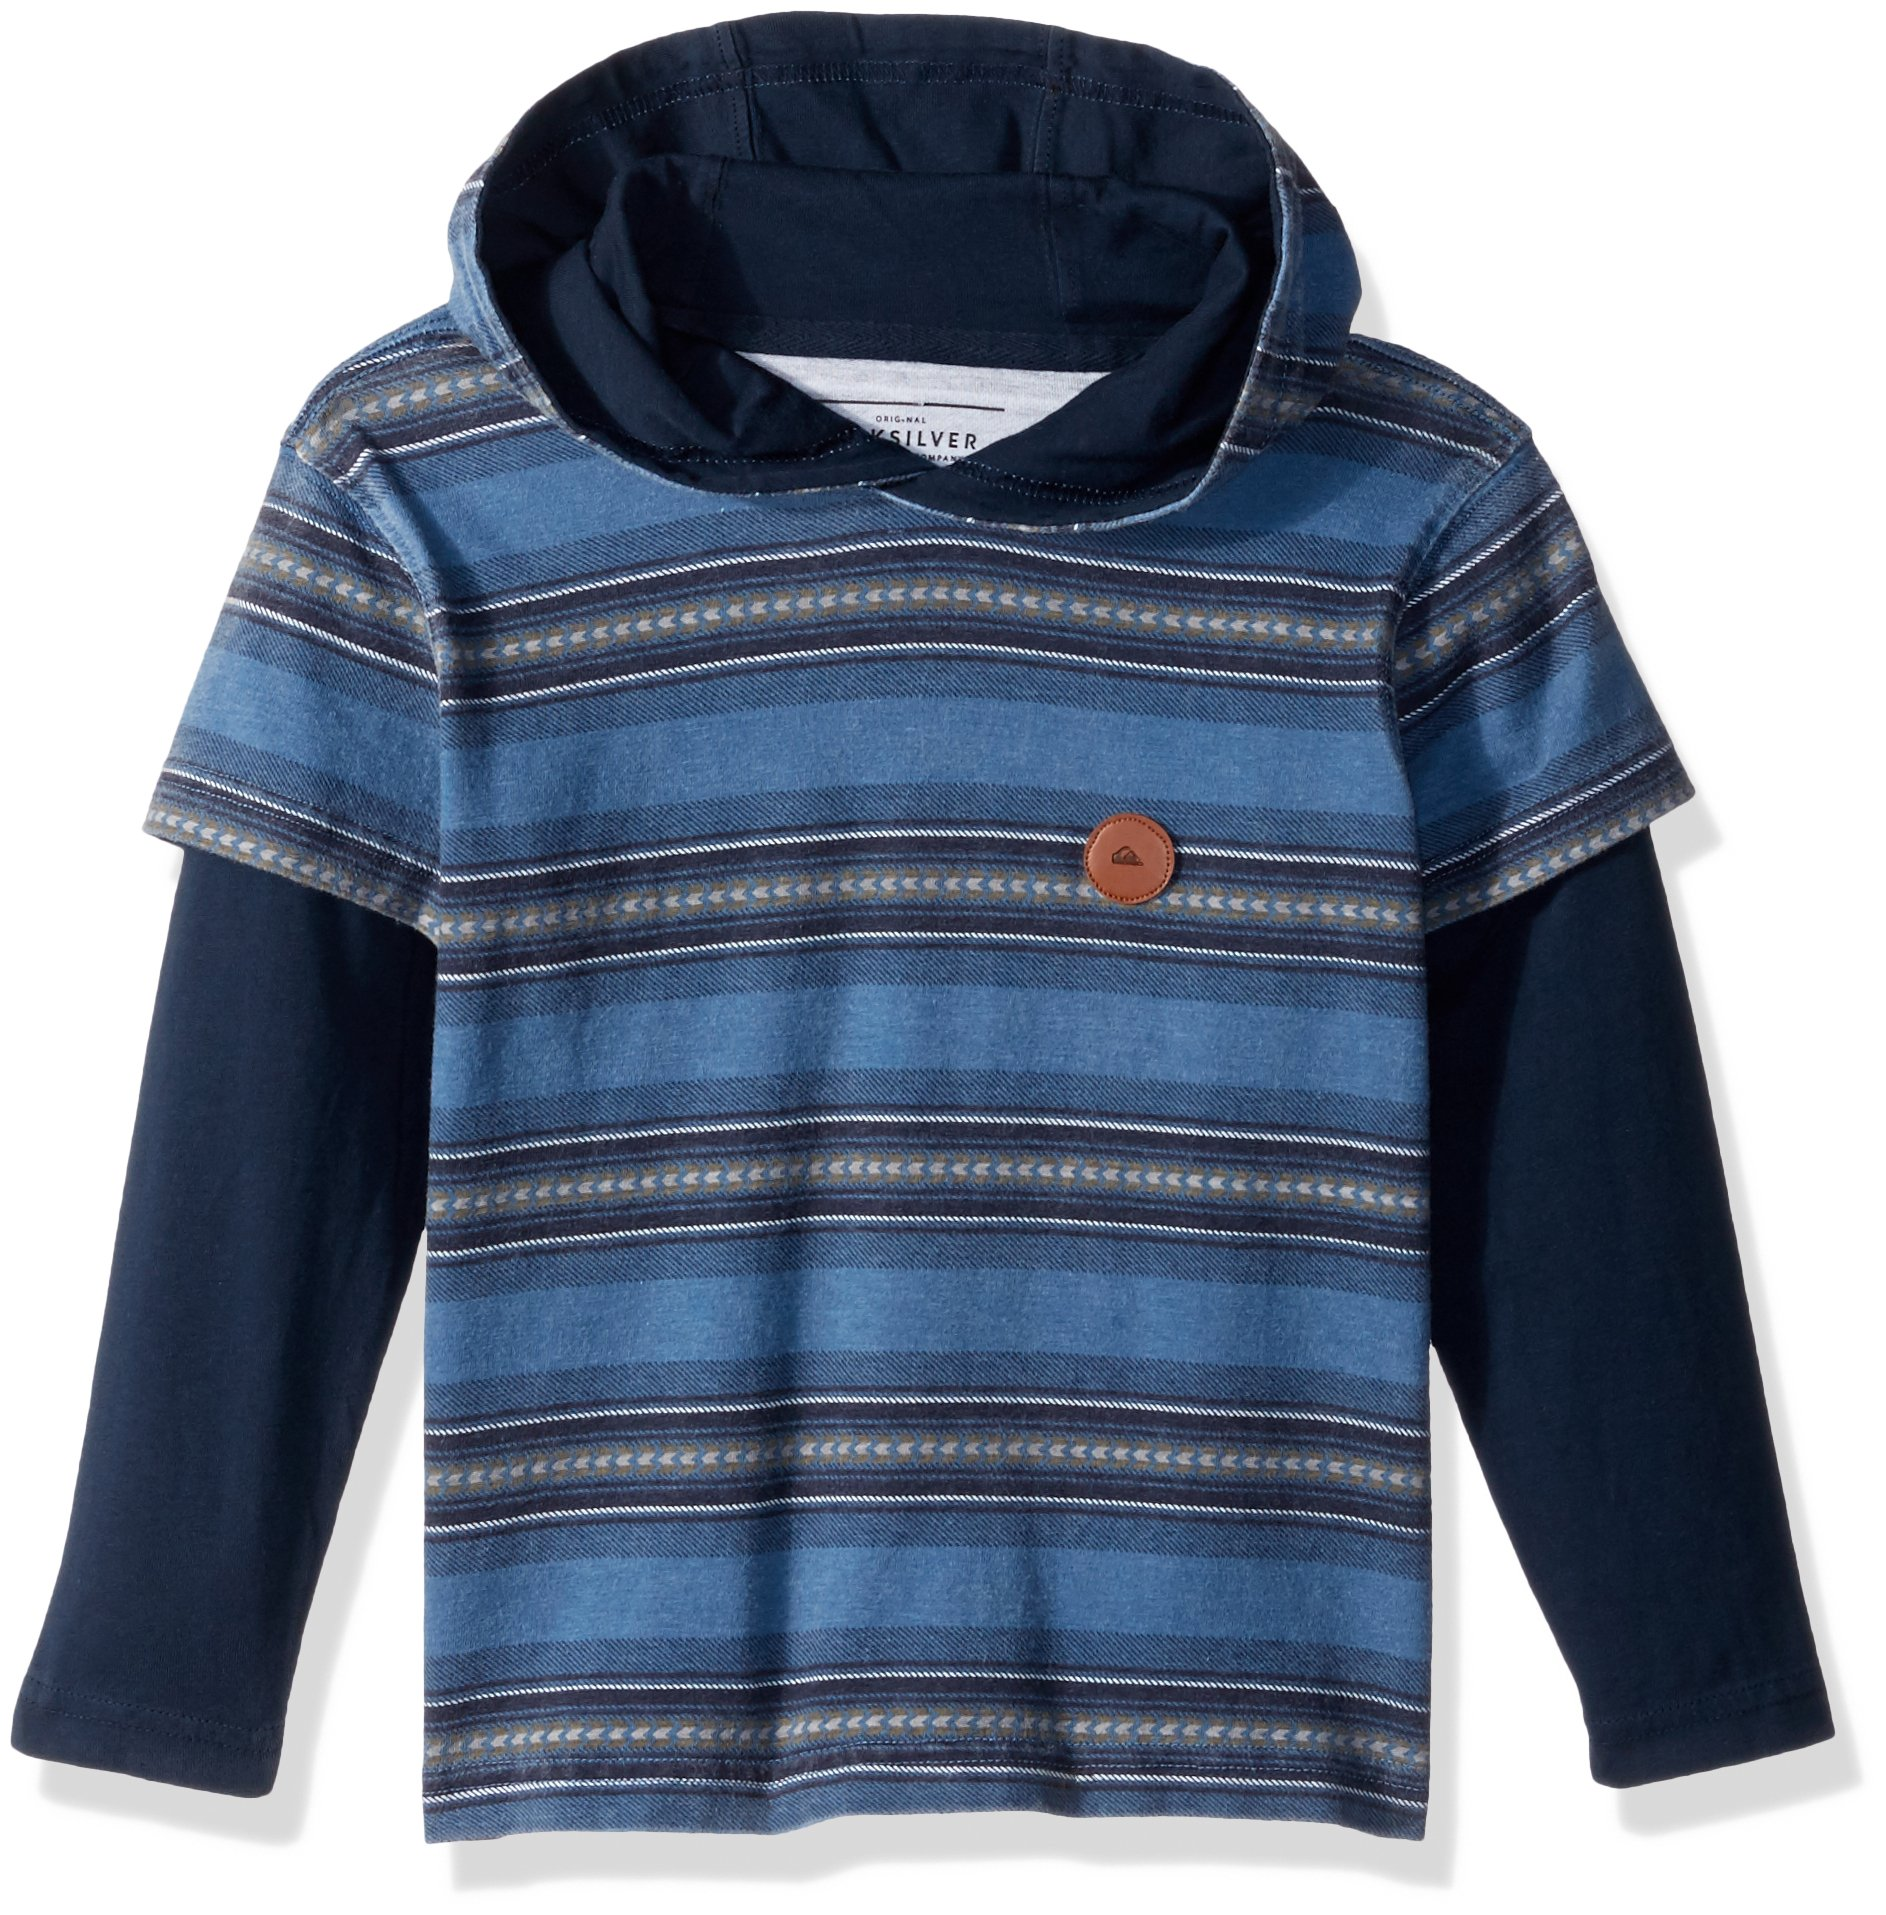 Quiksilver Little Boys' Haleiwa Kids, Navy Blazer, 5